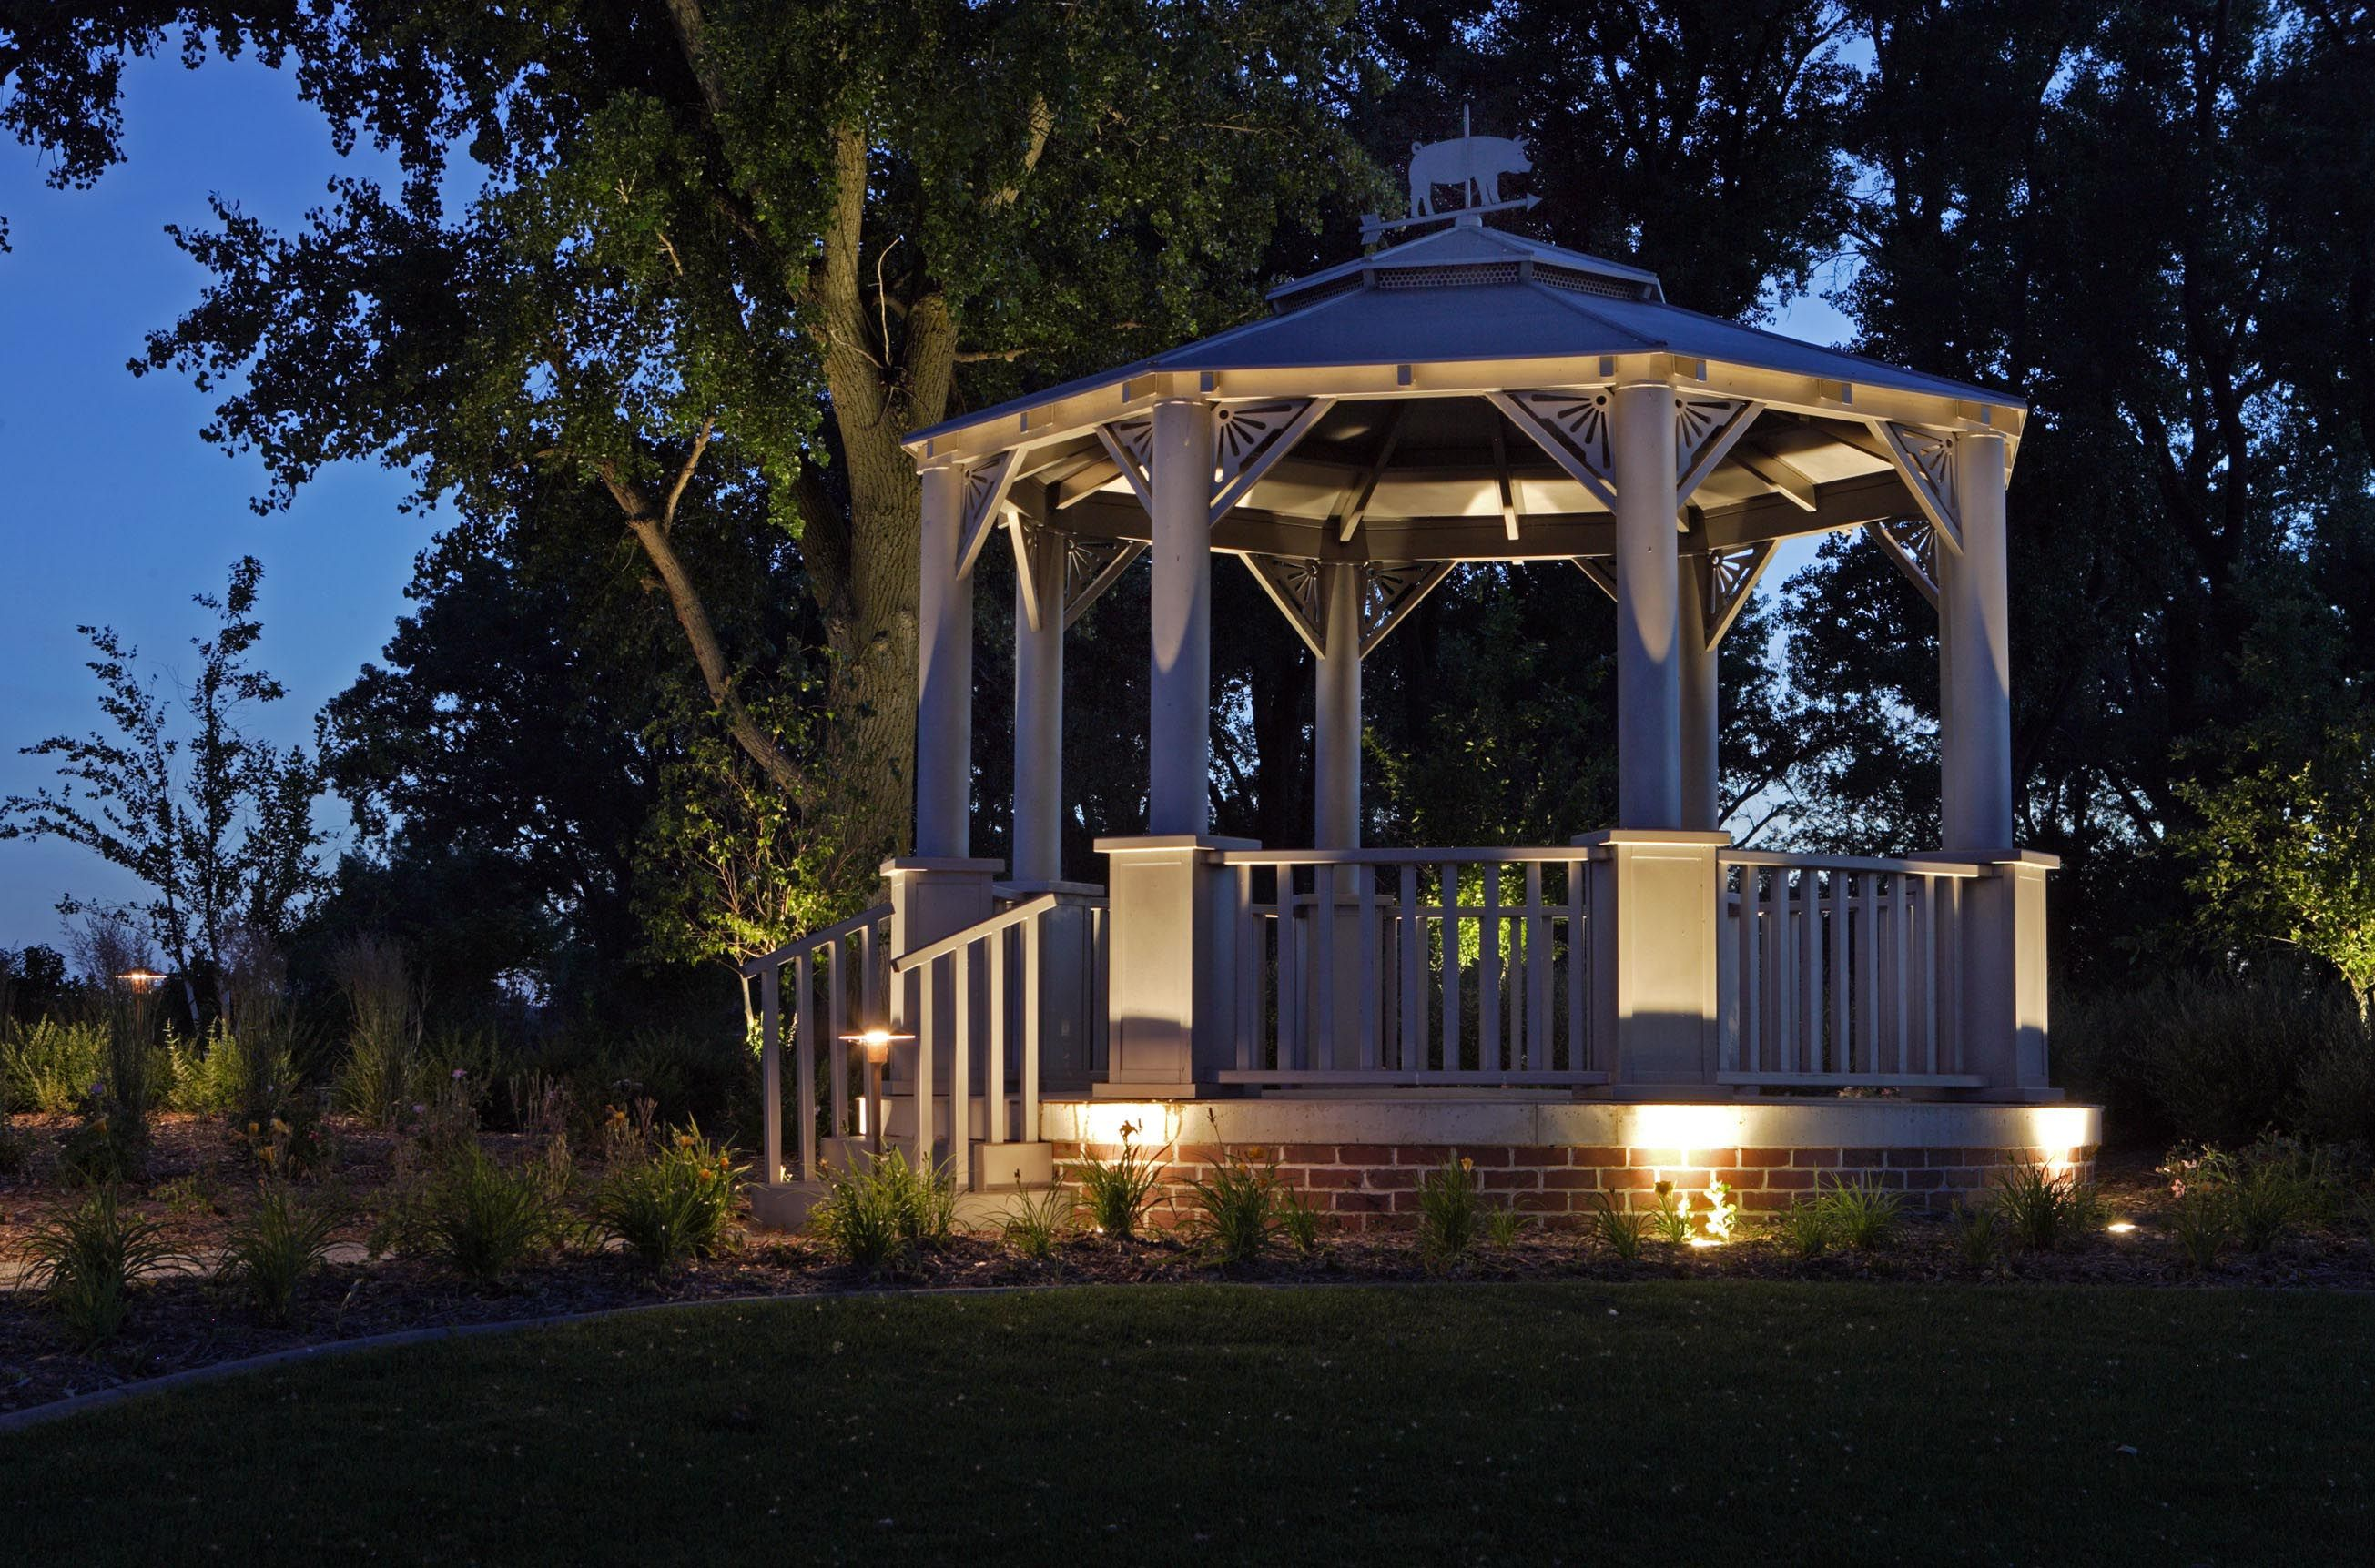 Outdoor Solar Gazebo Lights Gazebo lighting, Outdoor